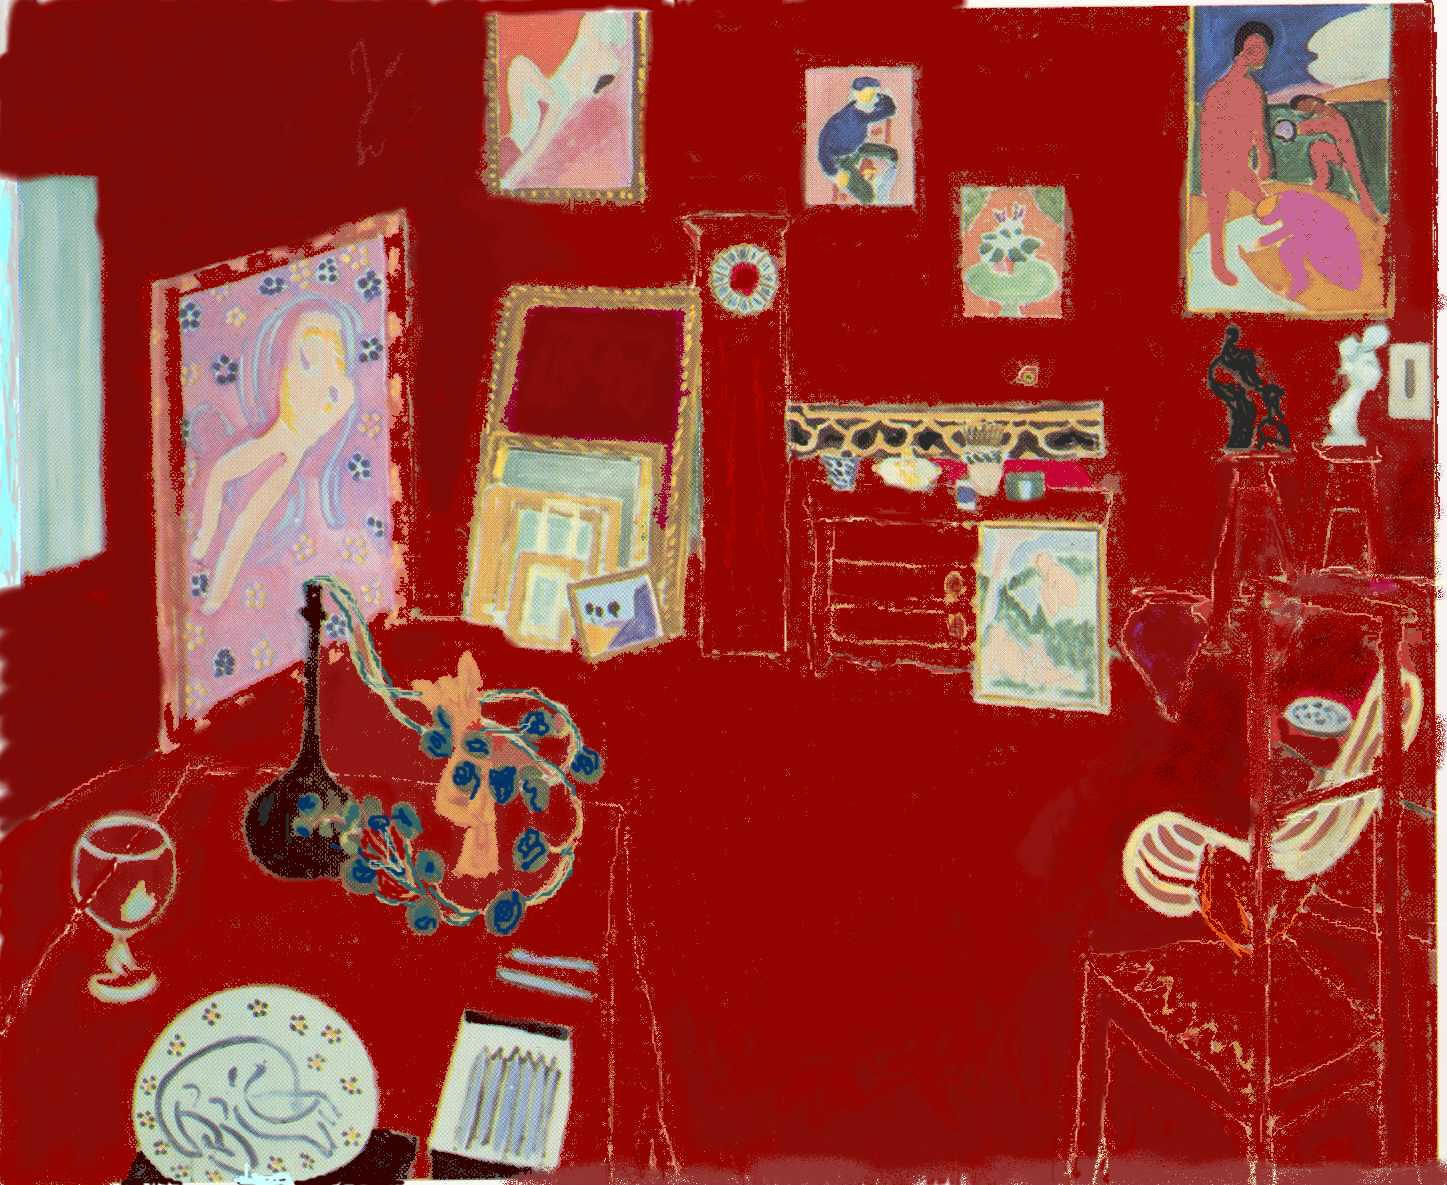 Henri Matisse, The Red Studio, oil on canvas, 1911 (MoMA)